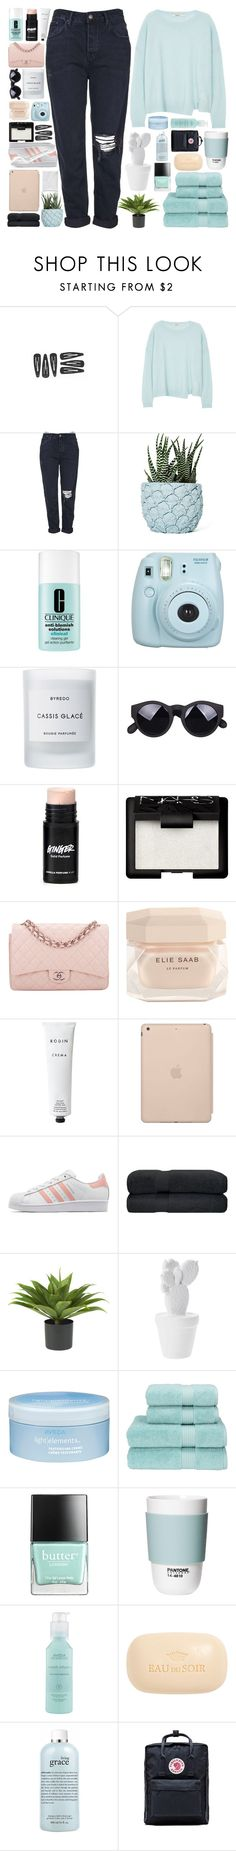 """""""☼; the salt on your skin."""" by c-astaway ❤ liked on Polyvore featuring J Brand, Topshop, Chen Chen & Kai Williams, Clinique, Byredo, NARS Cosmetics, Chanel, Elie Saab, Rodin Olio Lusso and Black Apple"""